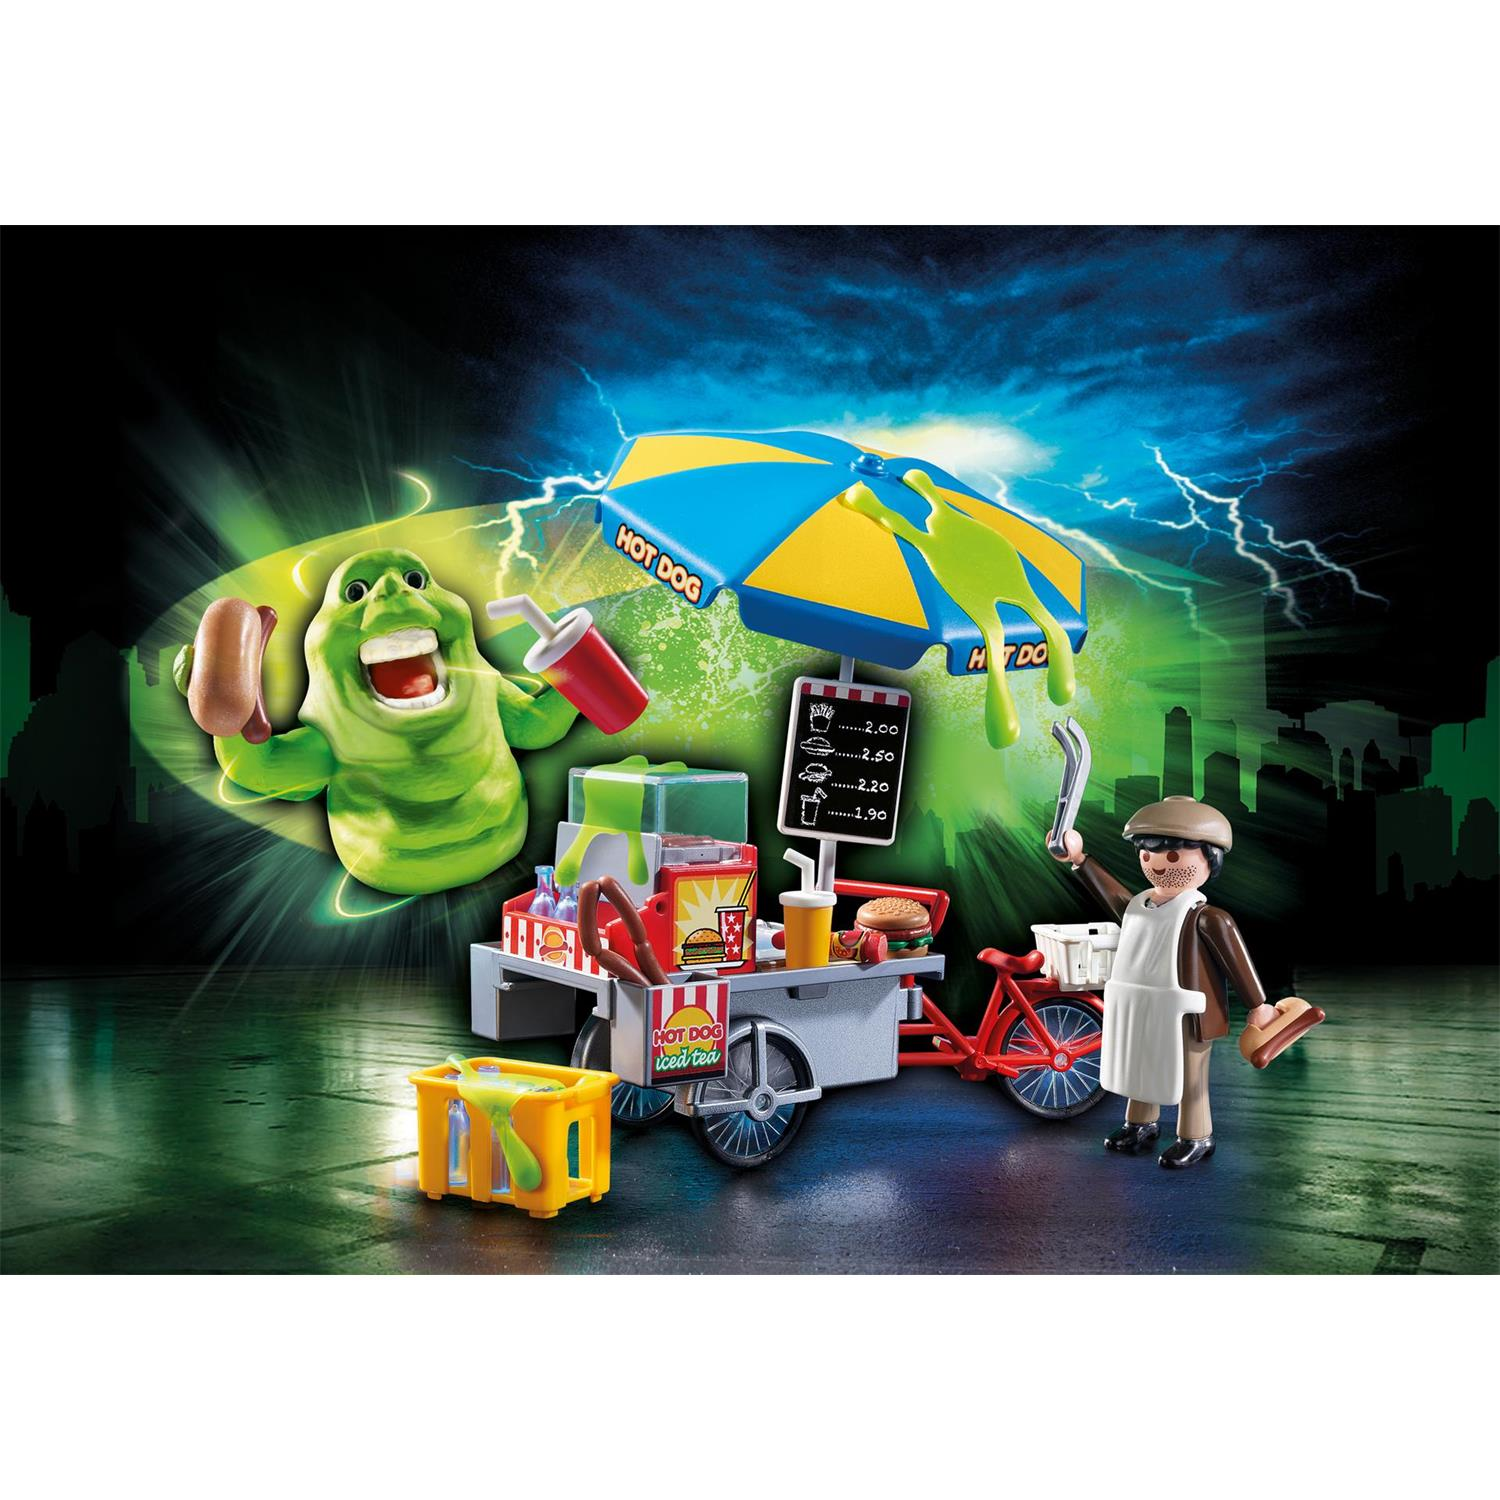 Lego Küche 70er Playmobil 9222 Ghostbusterslimer Mit Hot Dog Stand